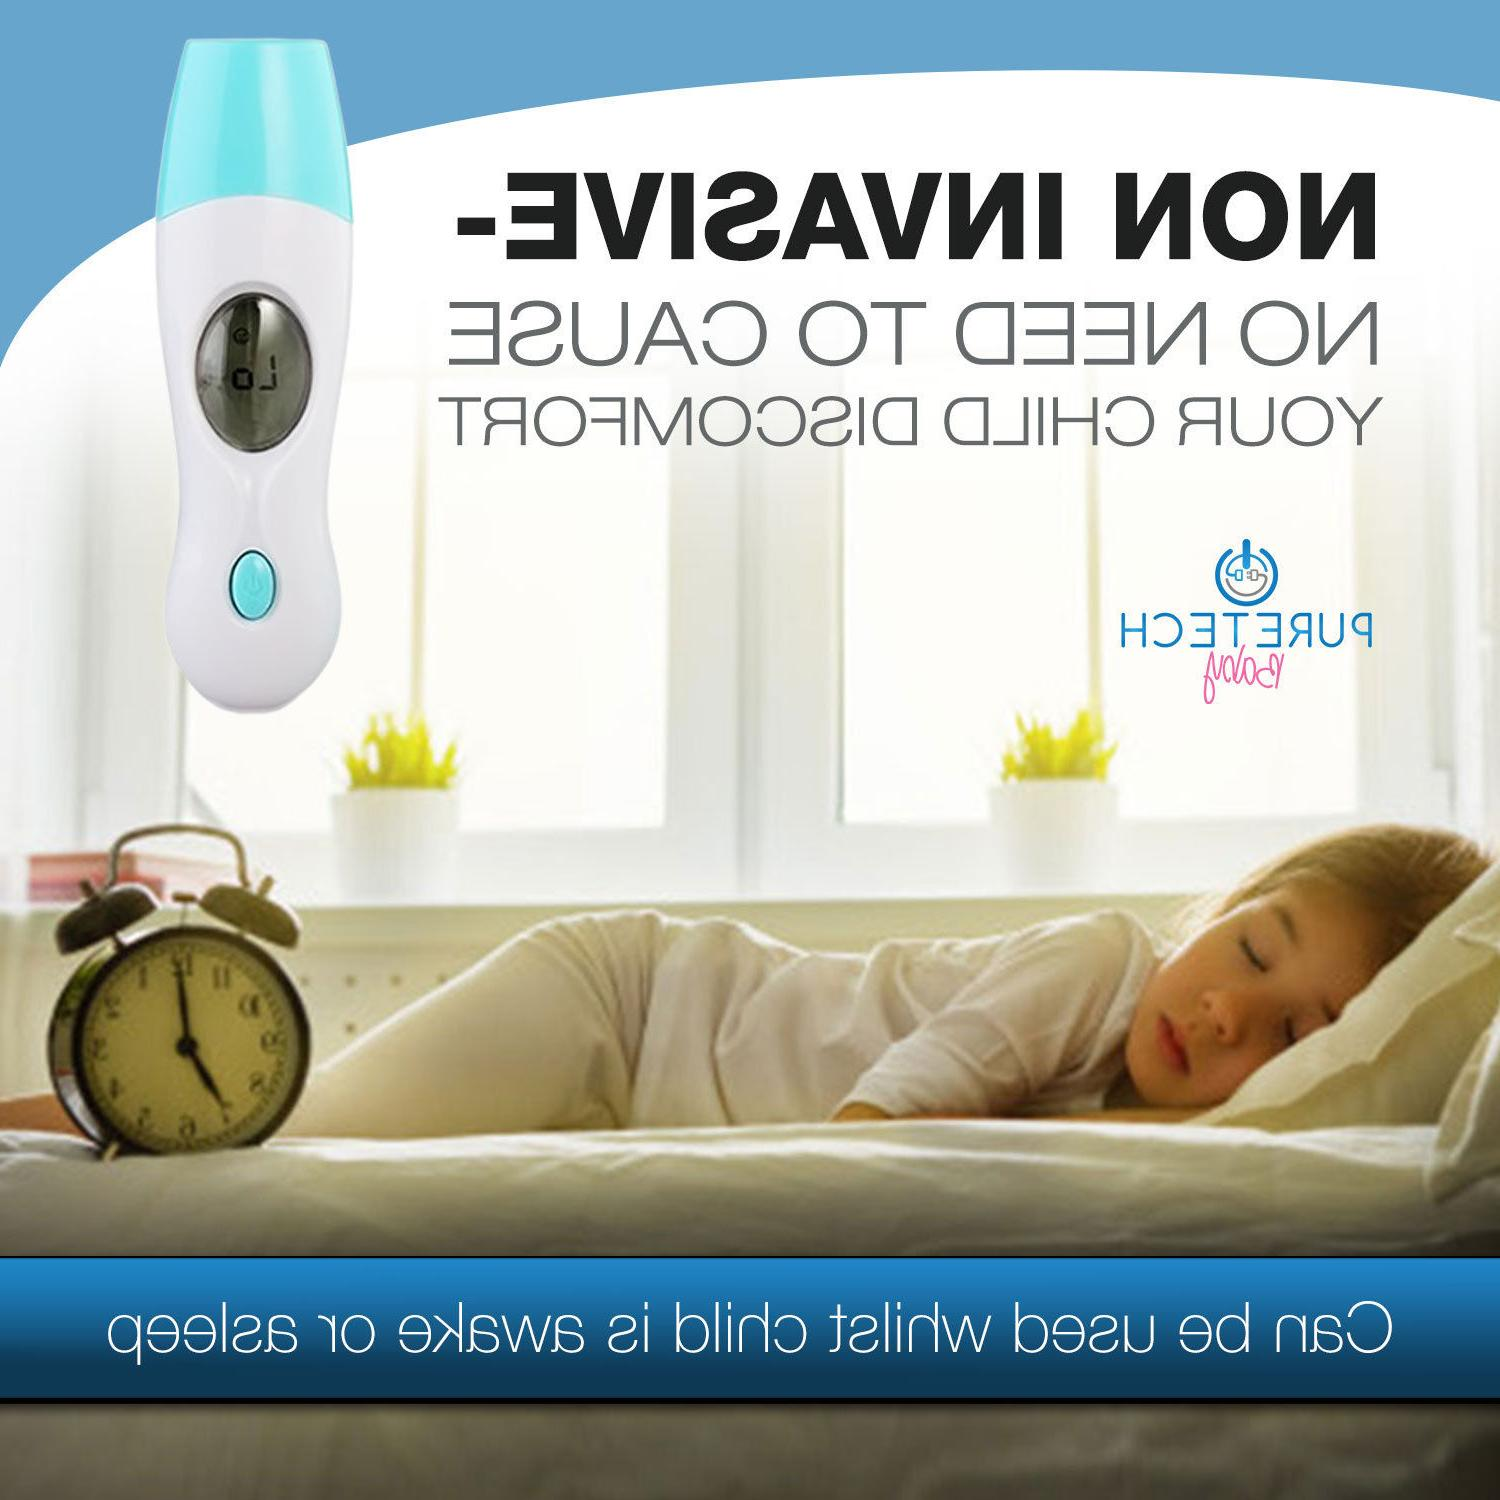 DIGITAL BABY in 1 CLINICAL INFRARED